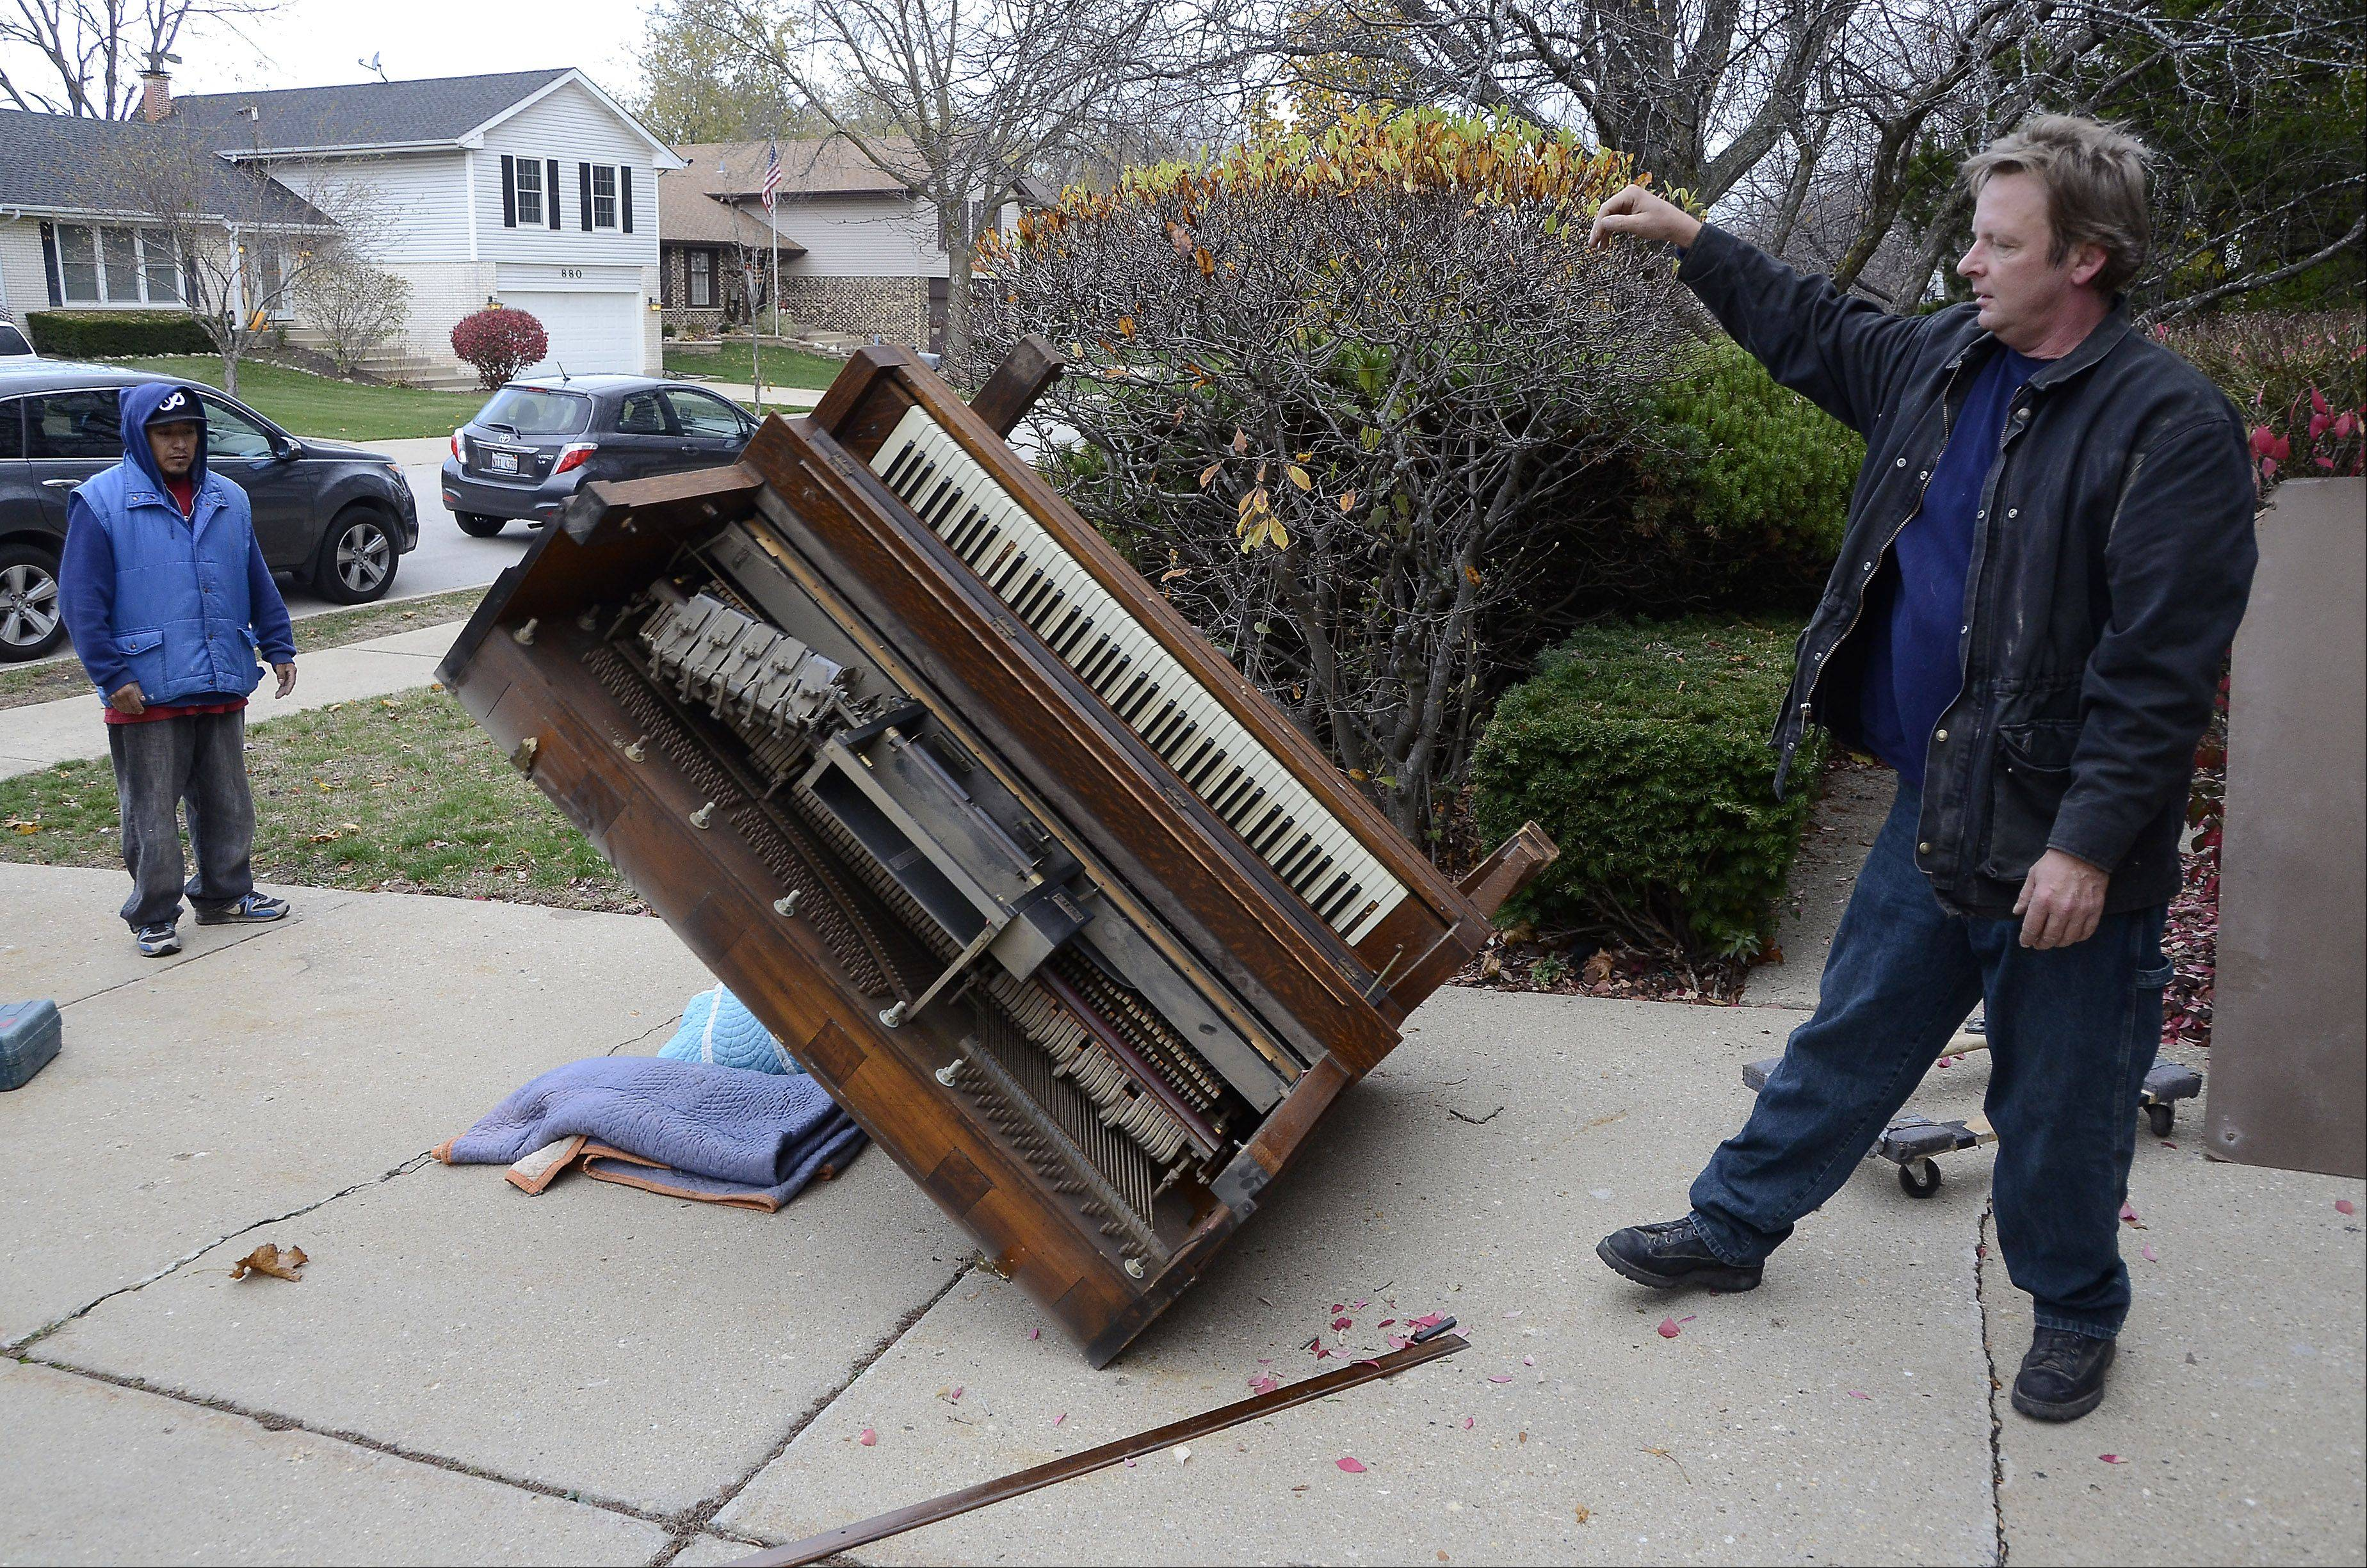 Glen Hansen lets a player piano fall in the driveway of a Schaumburg home as his helper, Mauro Pugo, looks on. The impact will help loosen glue joints making demolition easier. Hansen works for Art's Junk Removal in Mount Prospect.